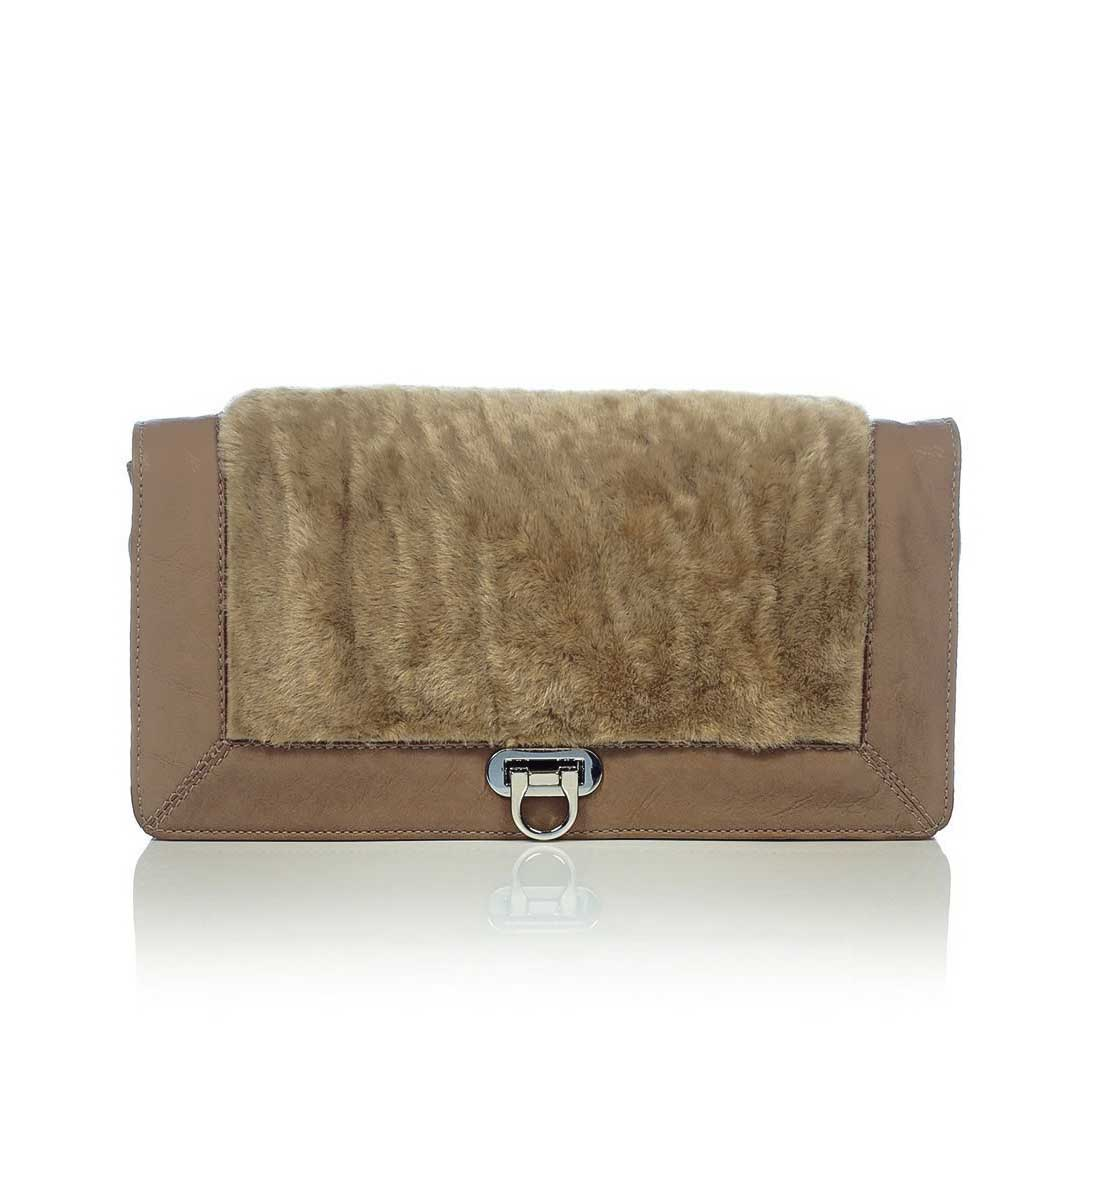 Phenomene Leder-Clutch Braun